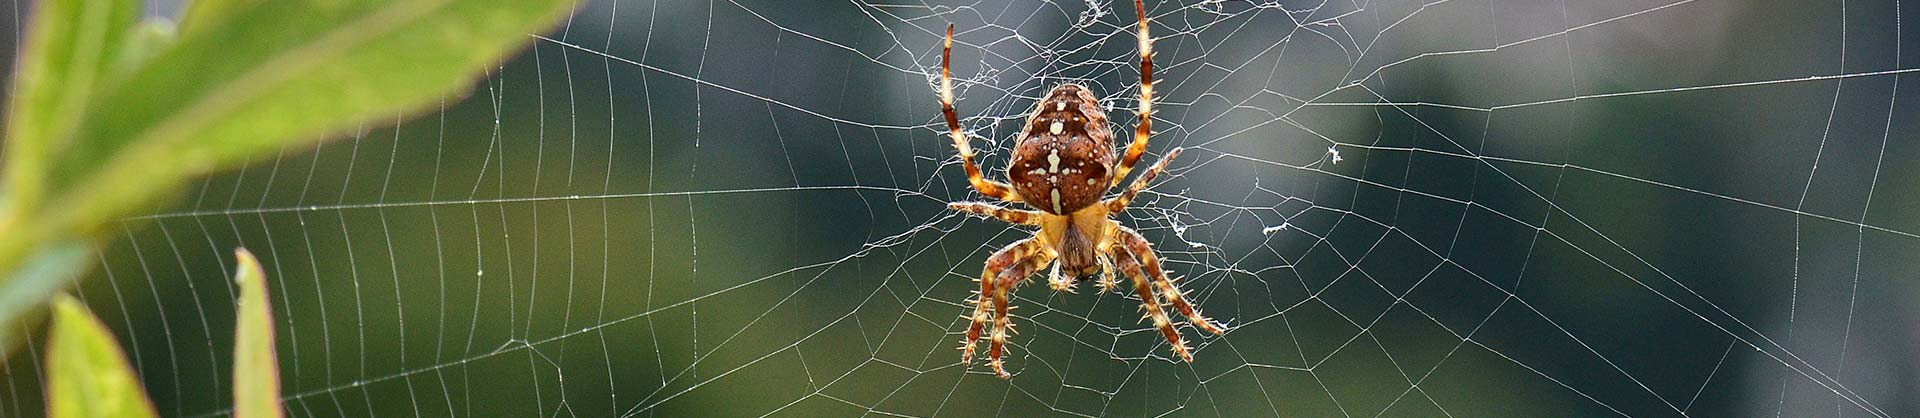 Spider Pest Control Services Newcastle